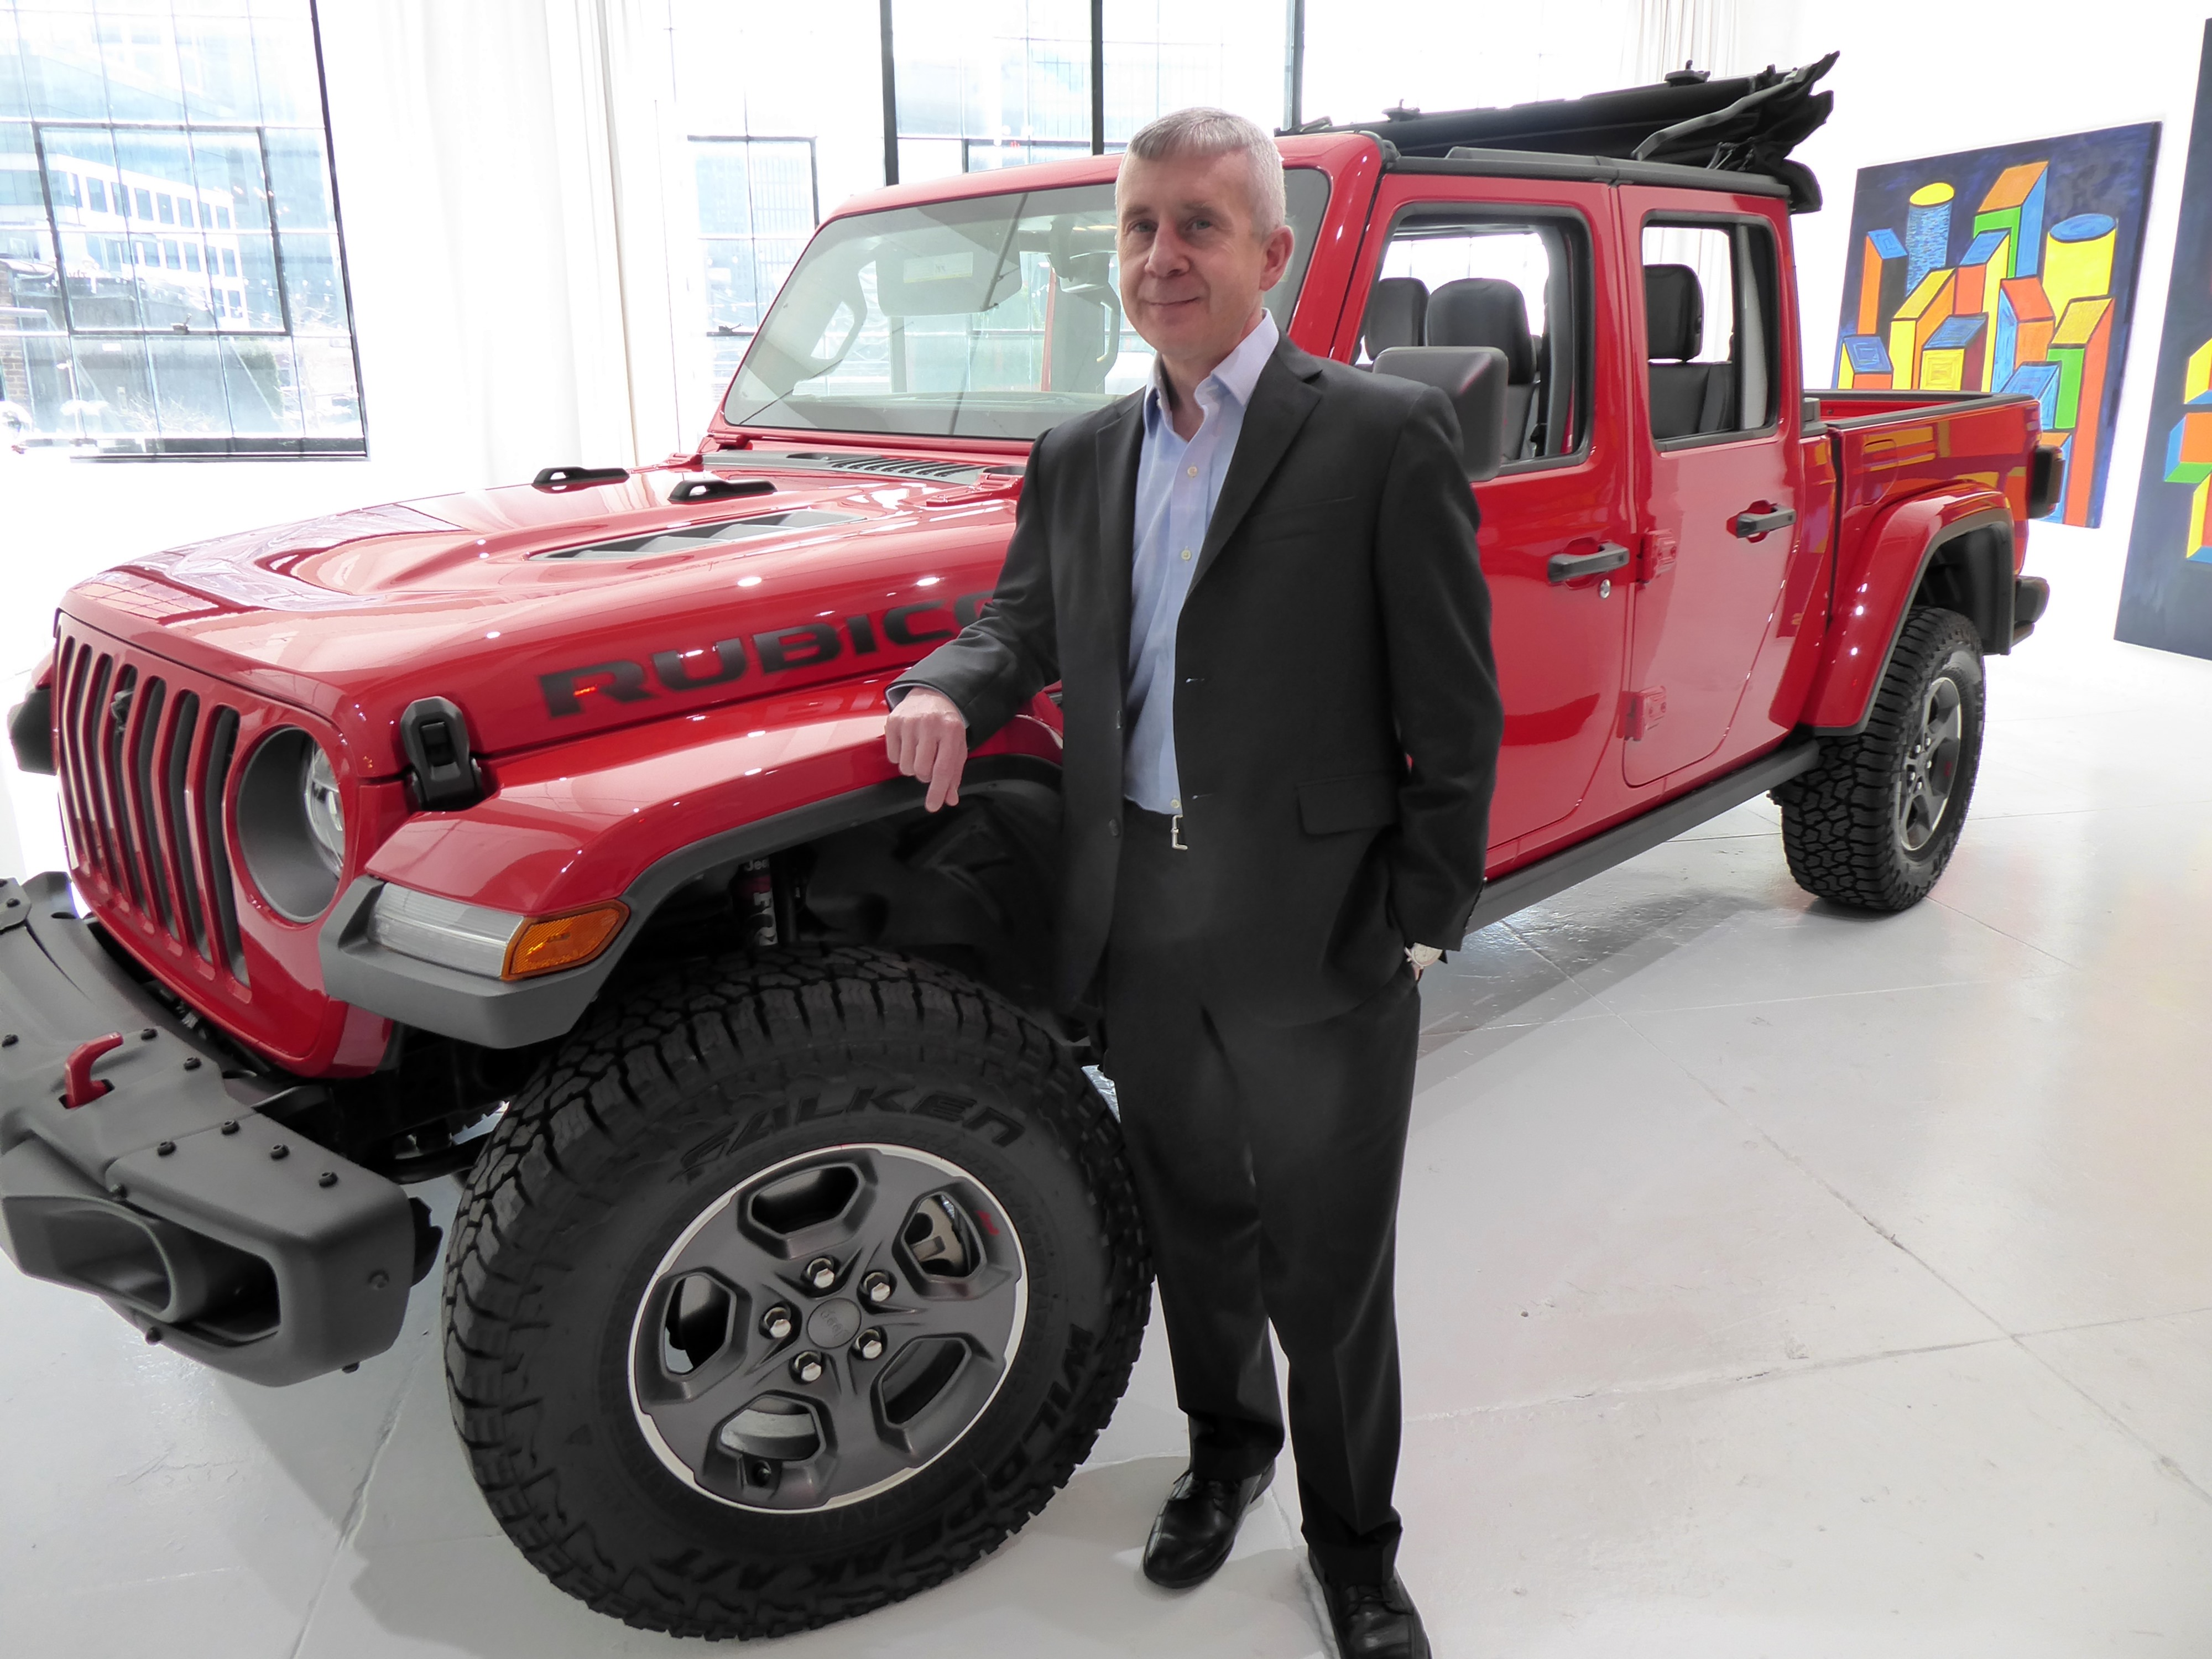 Cover image for  article: Jeep's Marketing Manager: It's the Real SUVs Versus the Pretenders